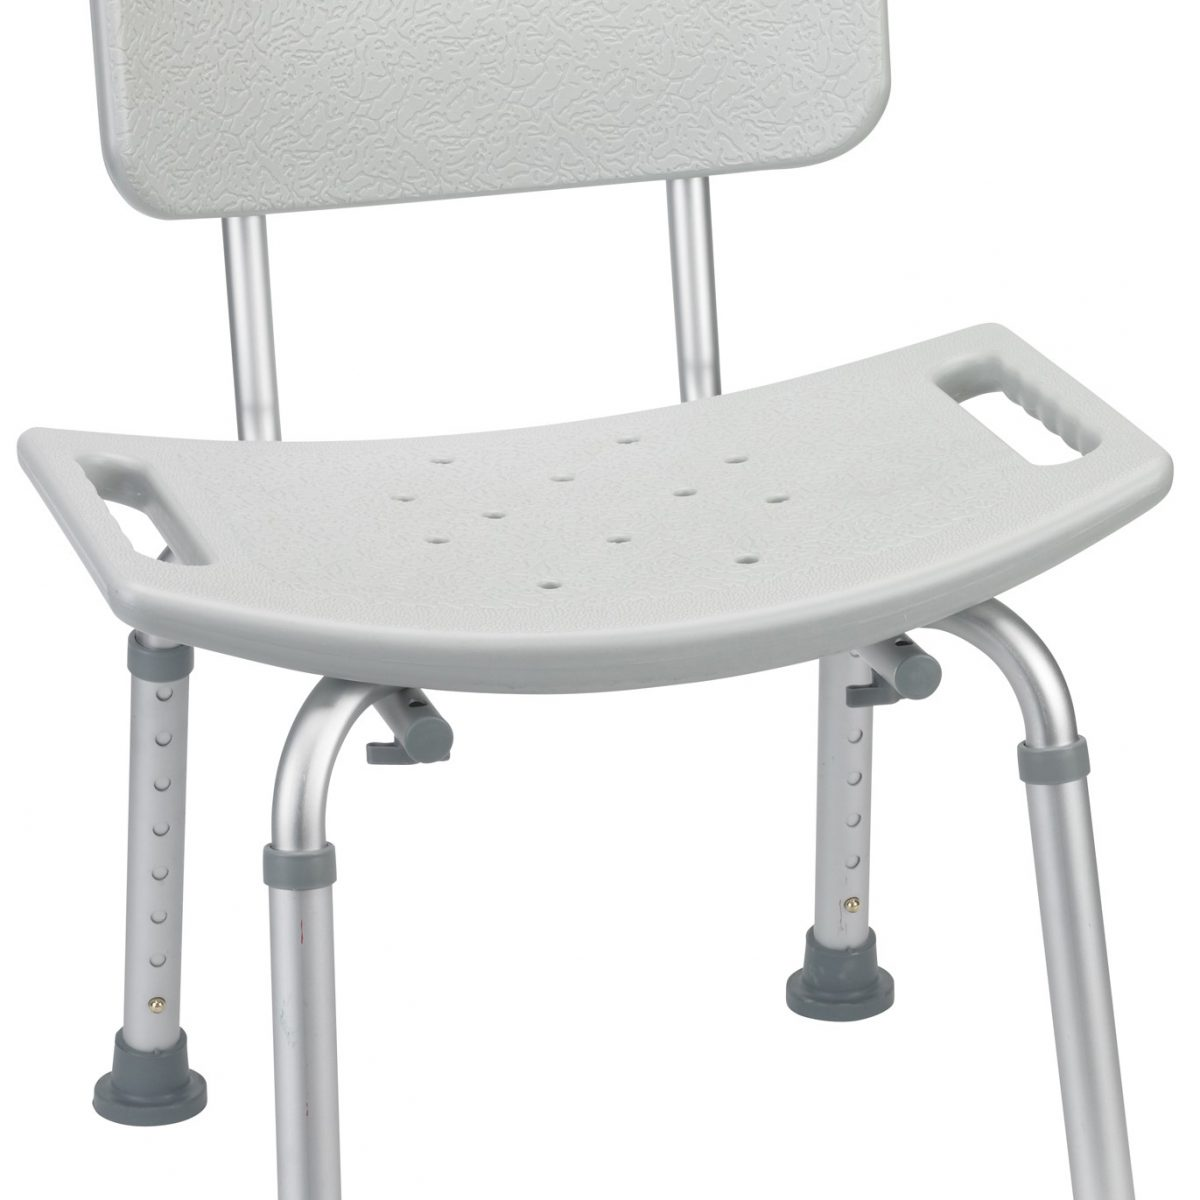 Drive Medical Bathroom Safety Shower Tub Bench Chair with